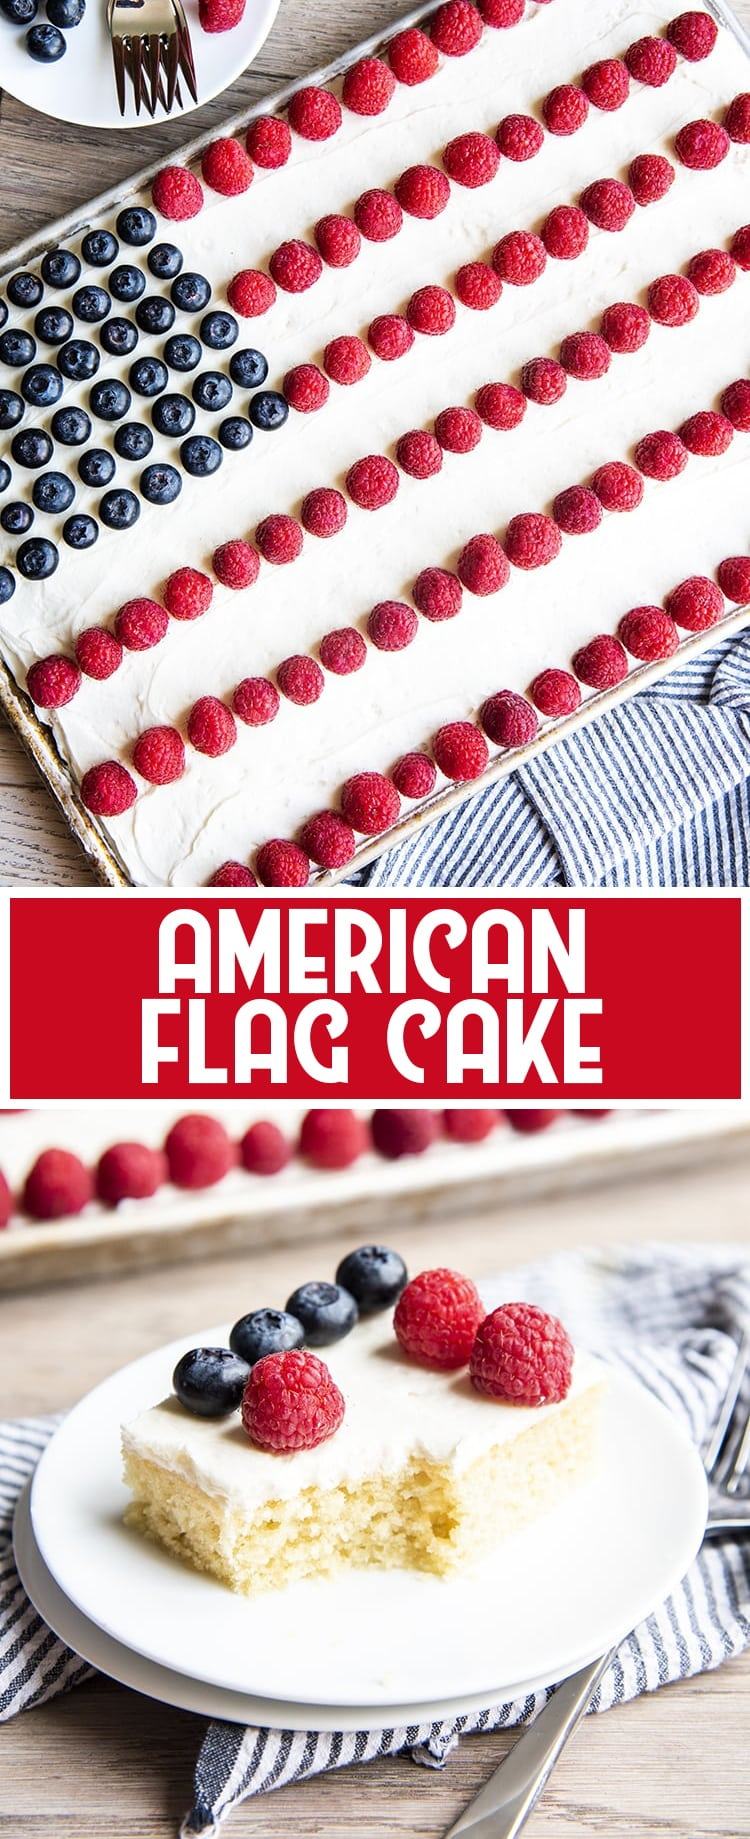 White Sheet Cake decorated with berries to look like the American flag